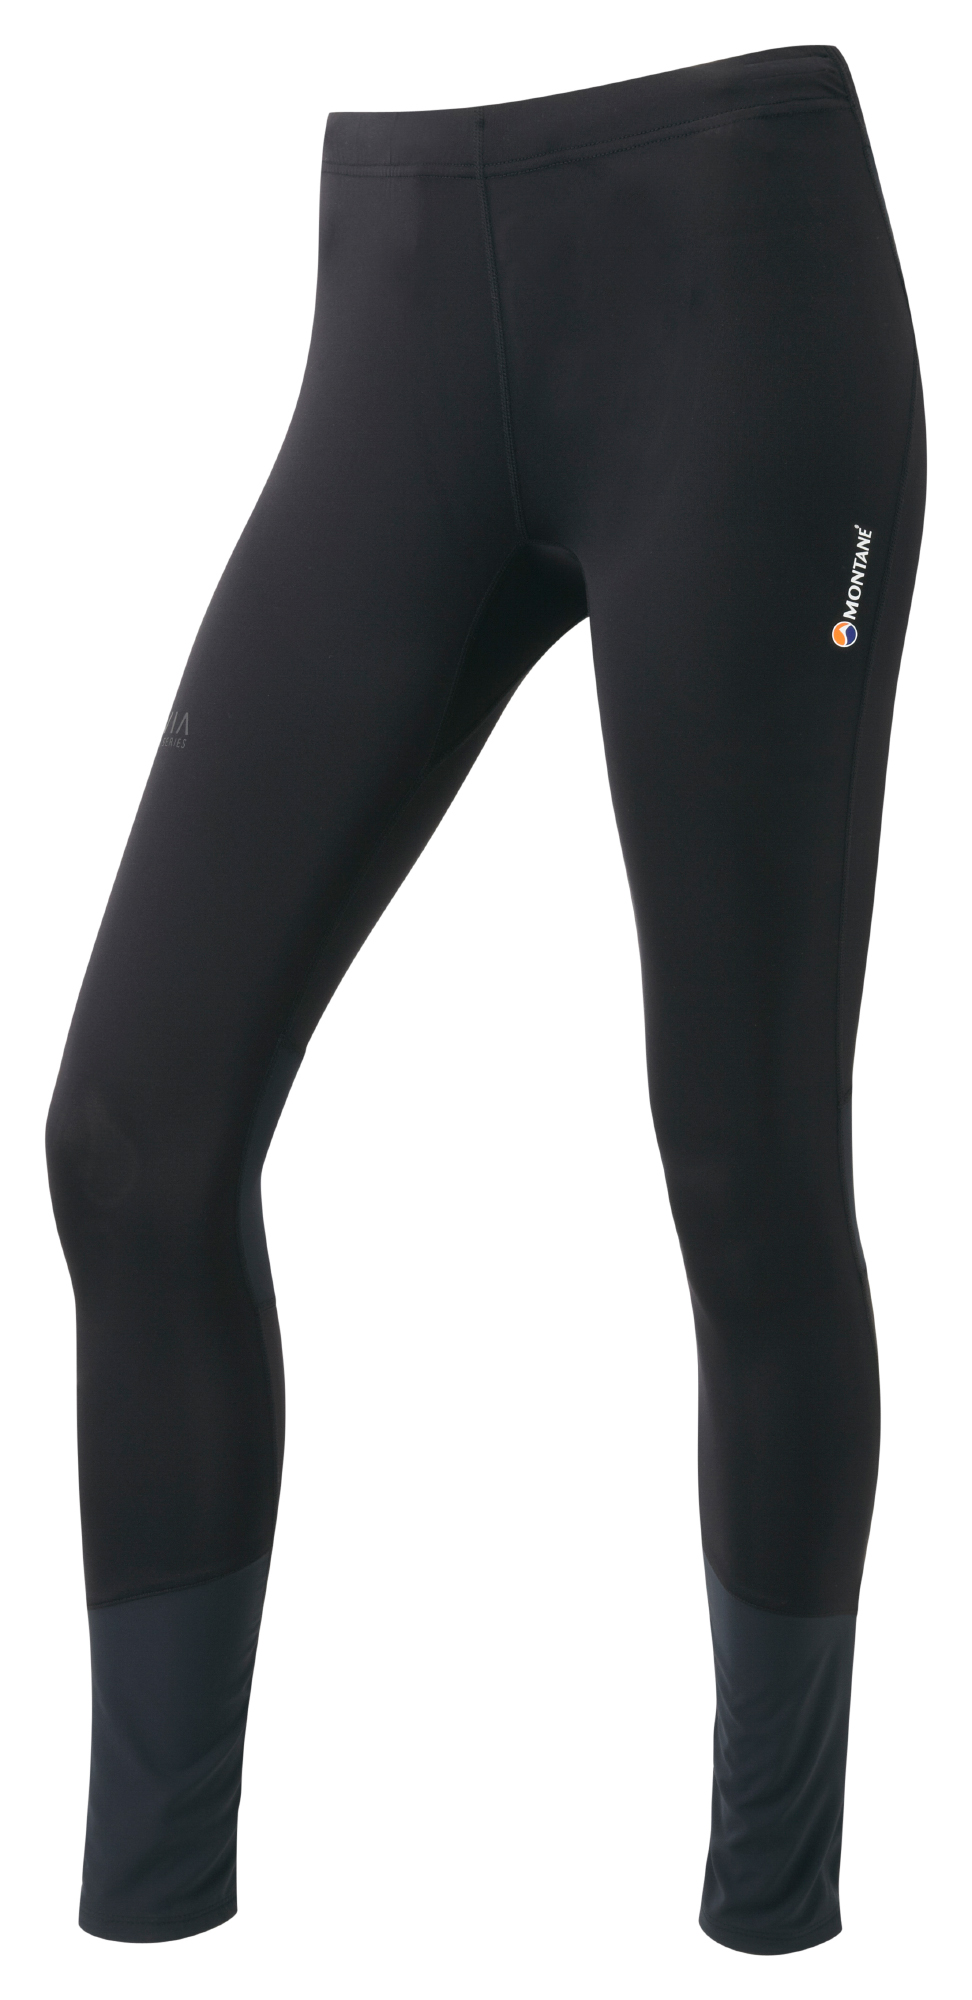 Montane Womens Trail Series Long Tights - Løbetights - Dame - Sort | Trousers